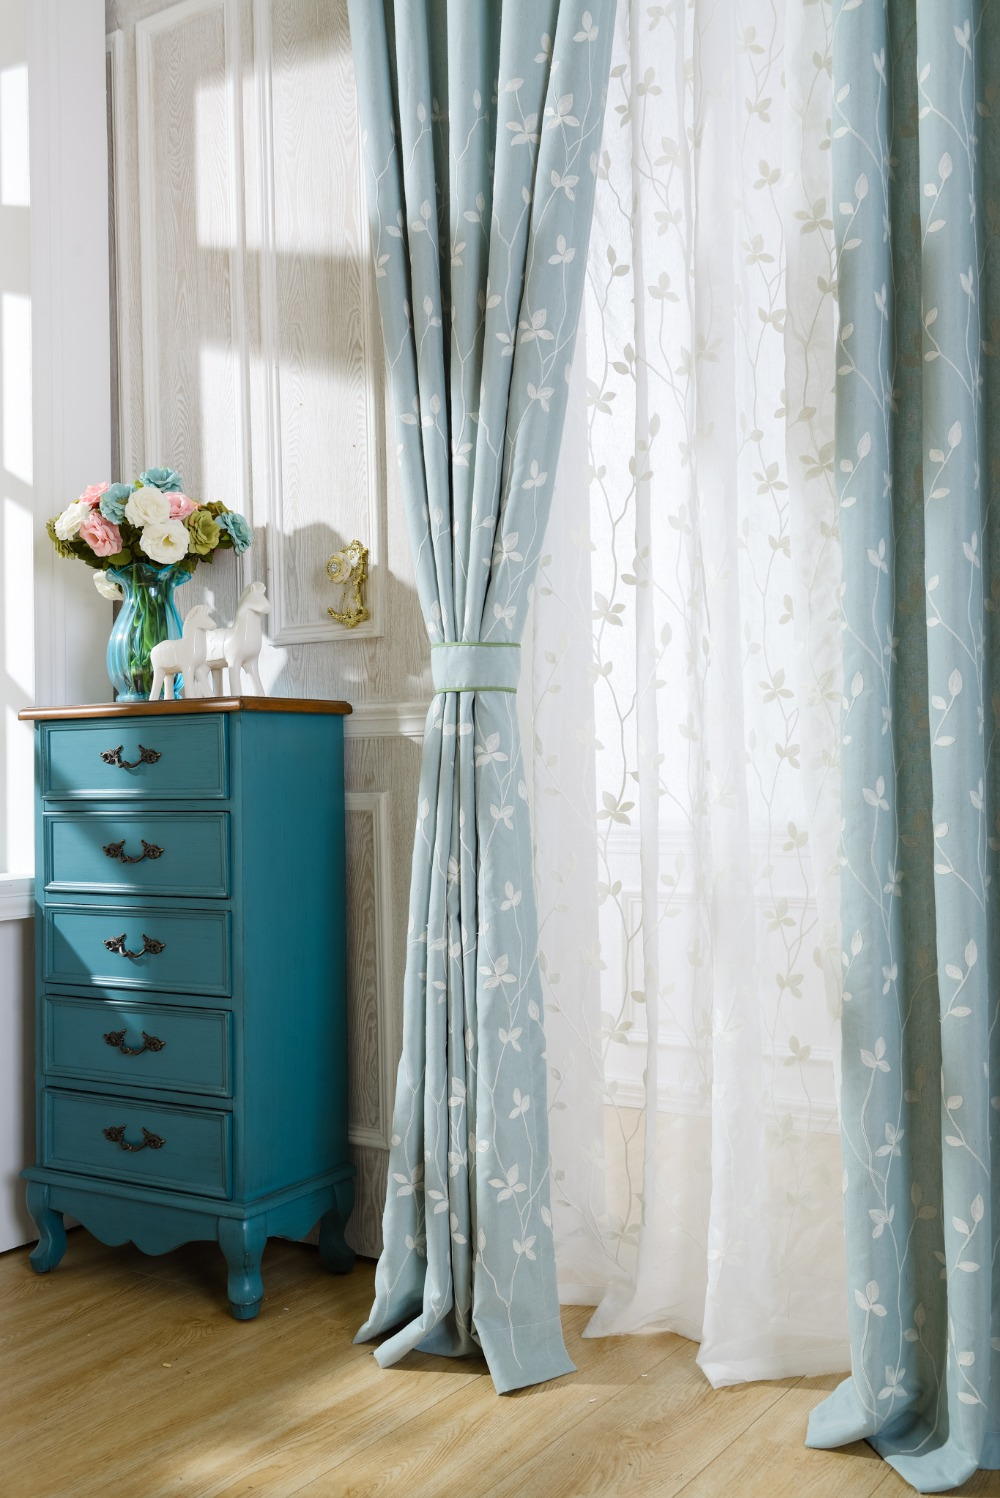 Us 10 79 45 Off Slow Soul Cotton Embroidered Curtains Light Blue White Leaves Window Sheer Drapes Living Room Leafs Pastoral Curtain Tulle In